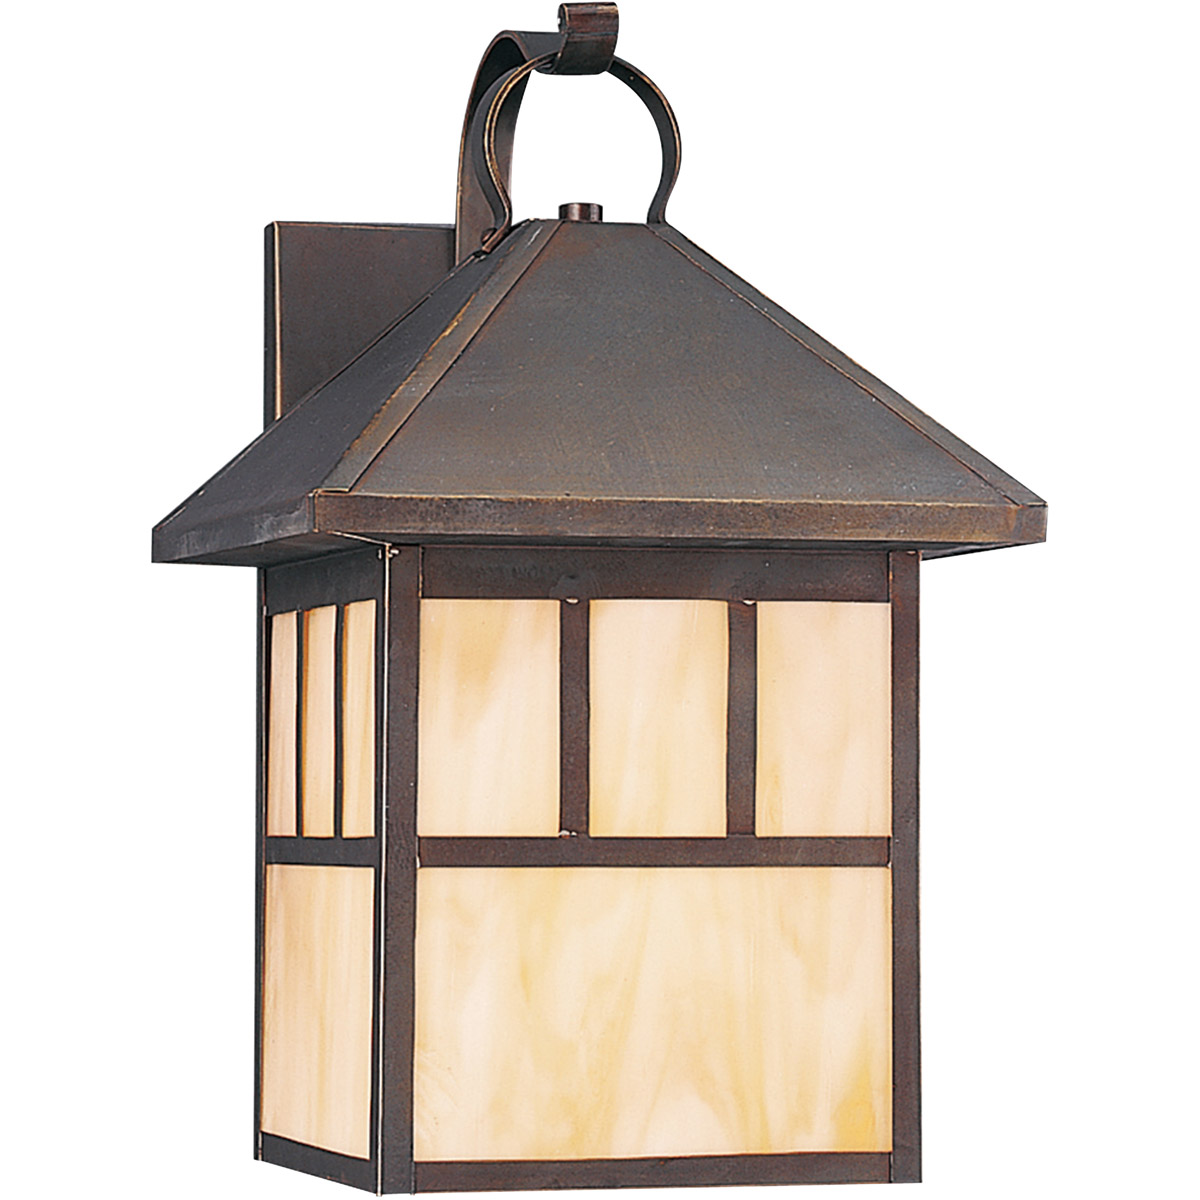 Sea Gull 8513-71 Prairie Statement 1 Light 17 inch Antique Bronze Outdoor Wall Lantern photo